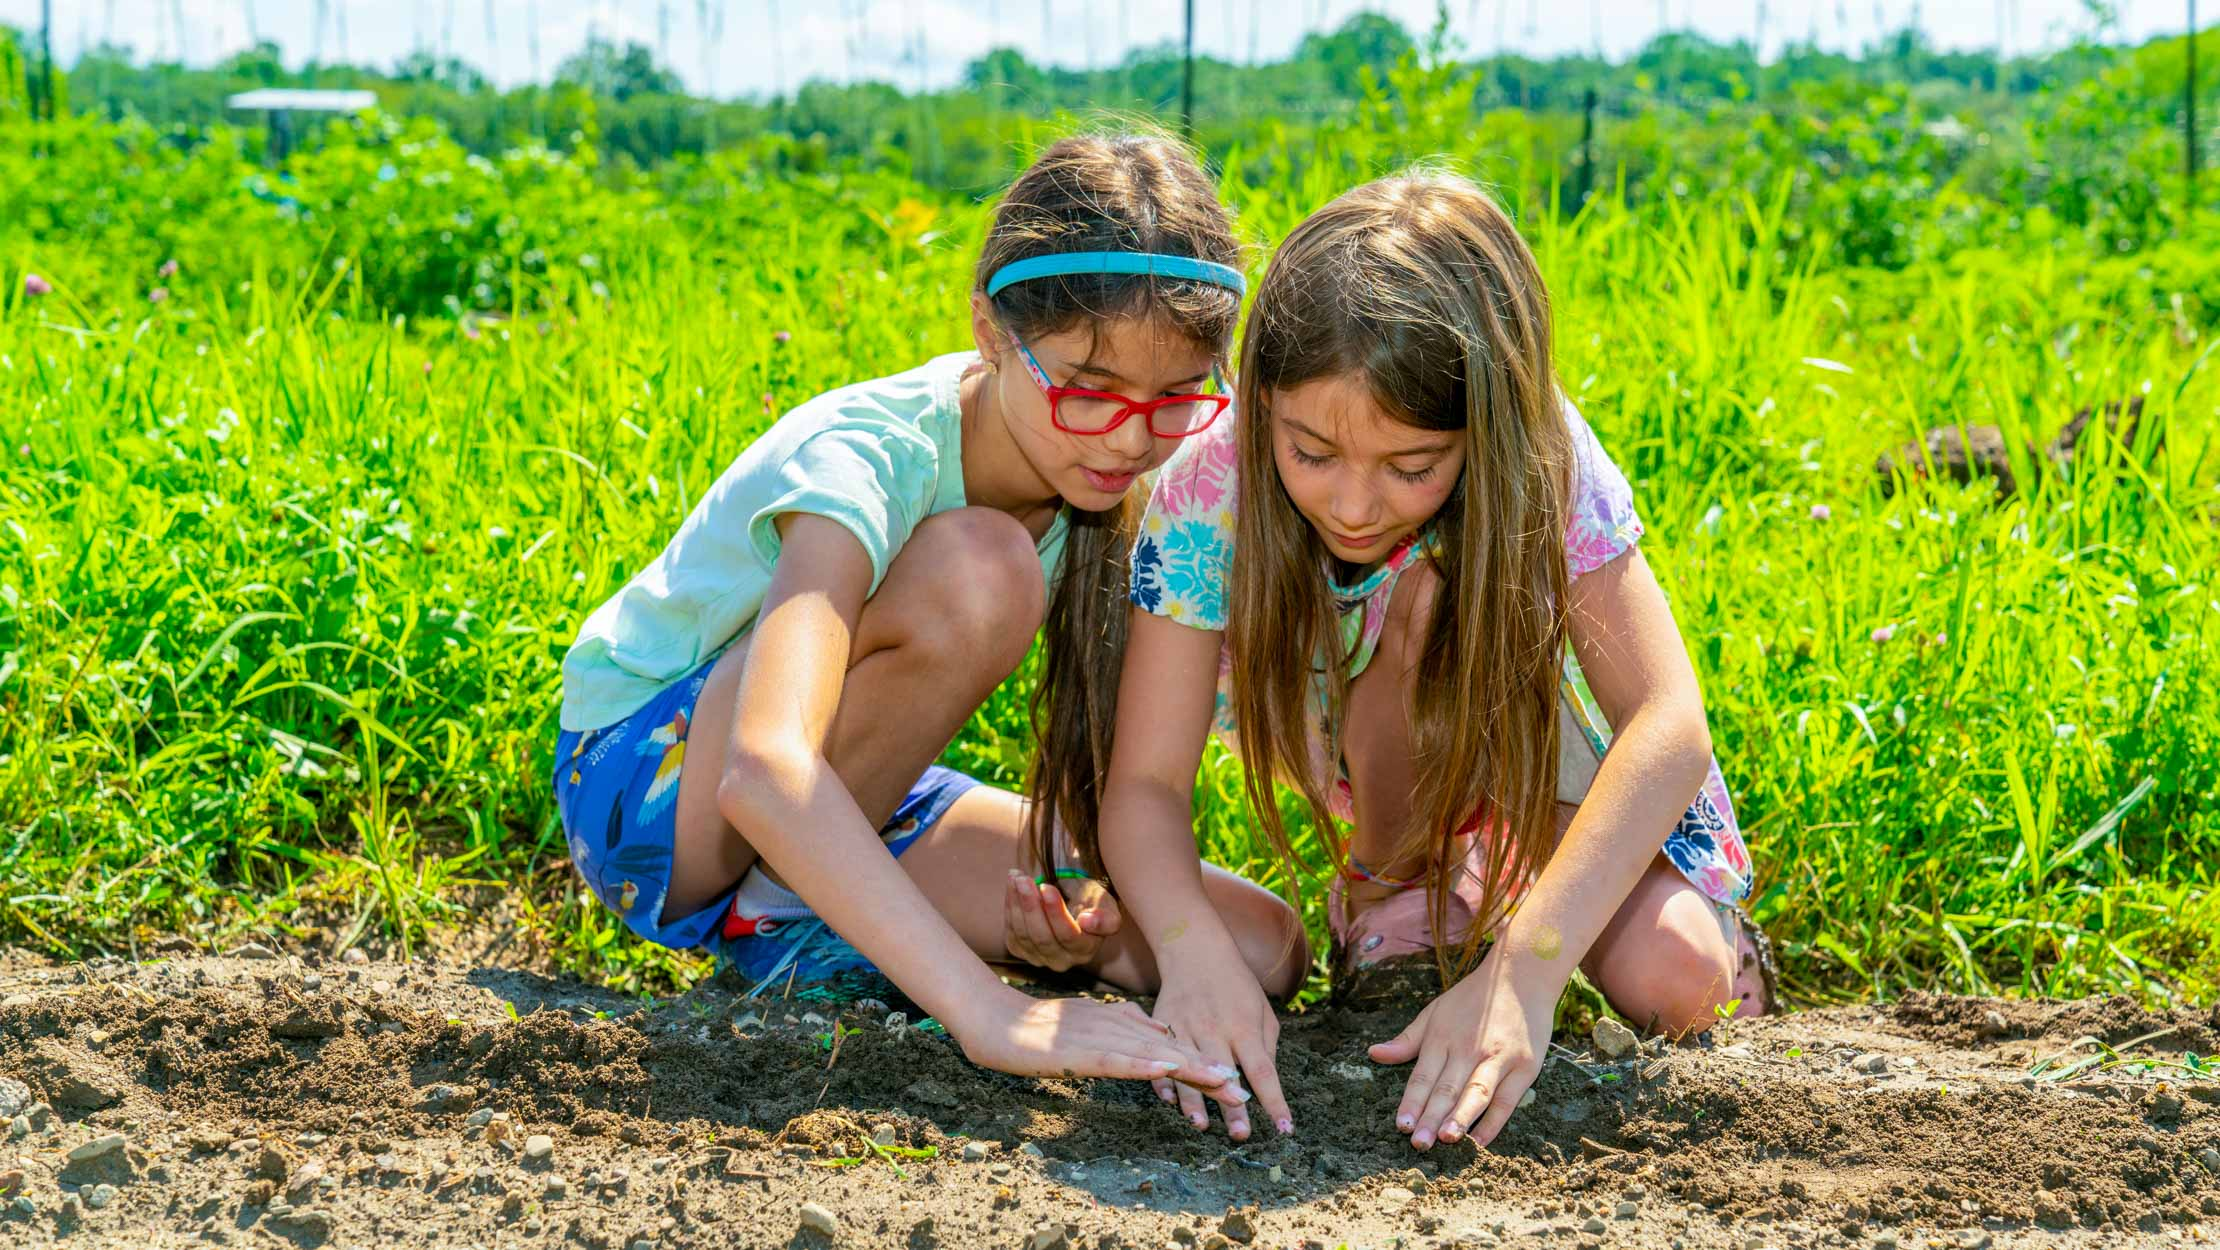 Two campers planting seeds